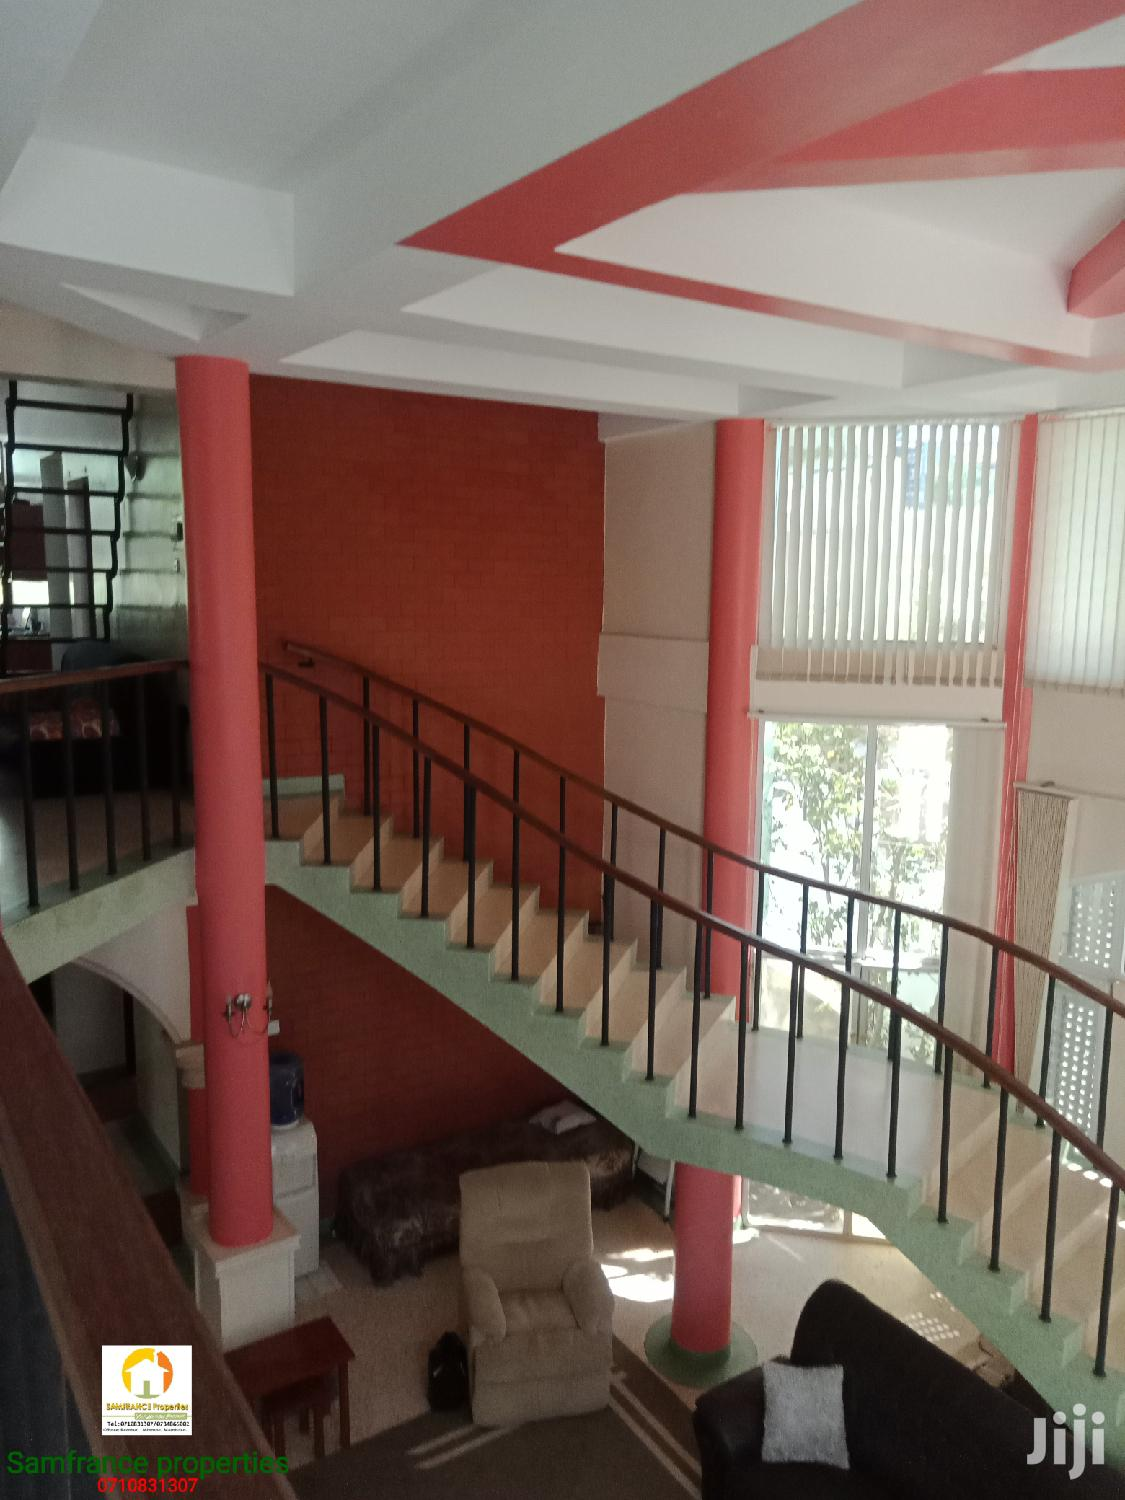 Mini Flat in Nyali for Sale | Houses & Apartments For Sale for sale in Nyali, Mombasa, Kenya